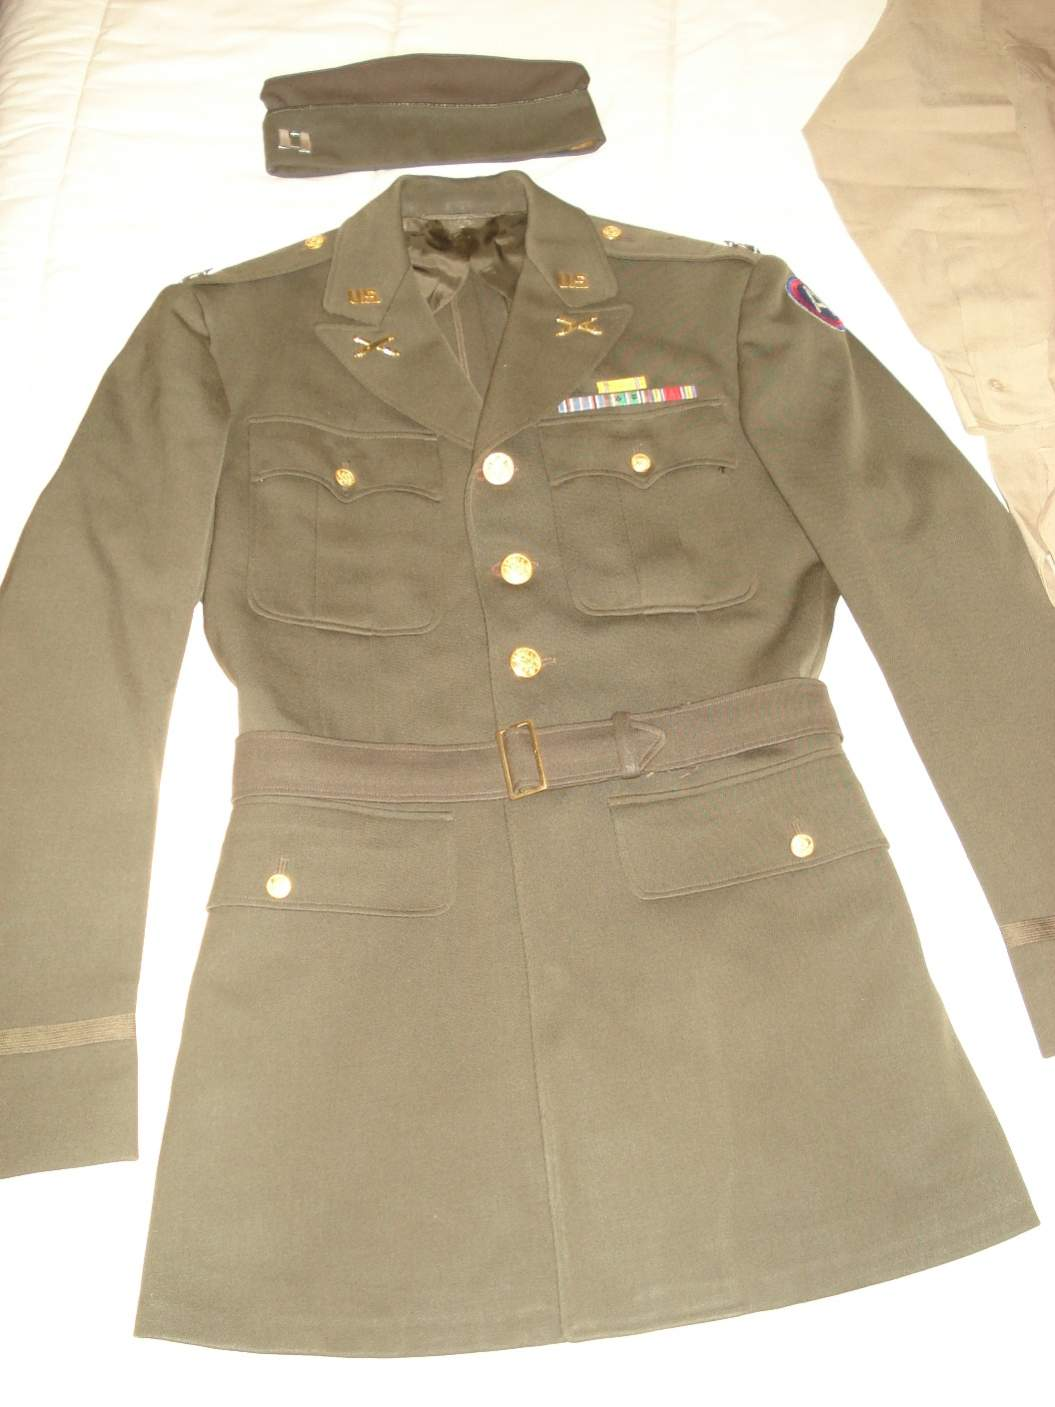 WWII US 3rd ARMY OFFICER'S UNIFORM - What do you think ...